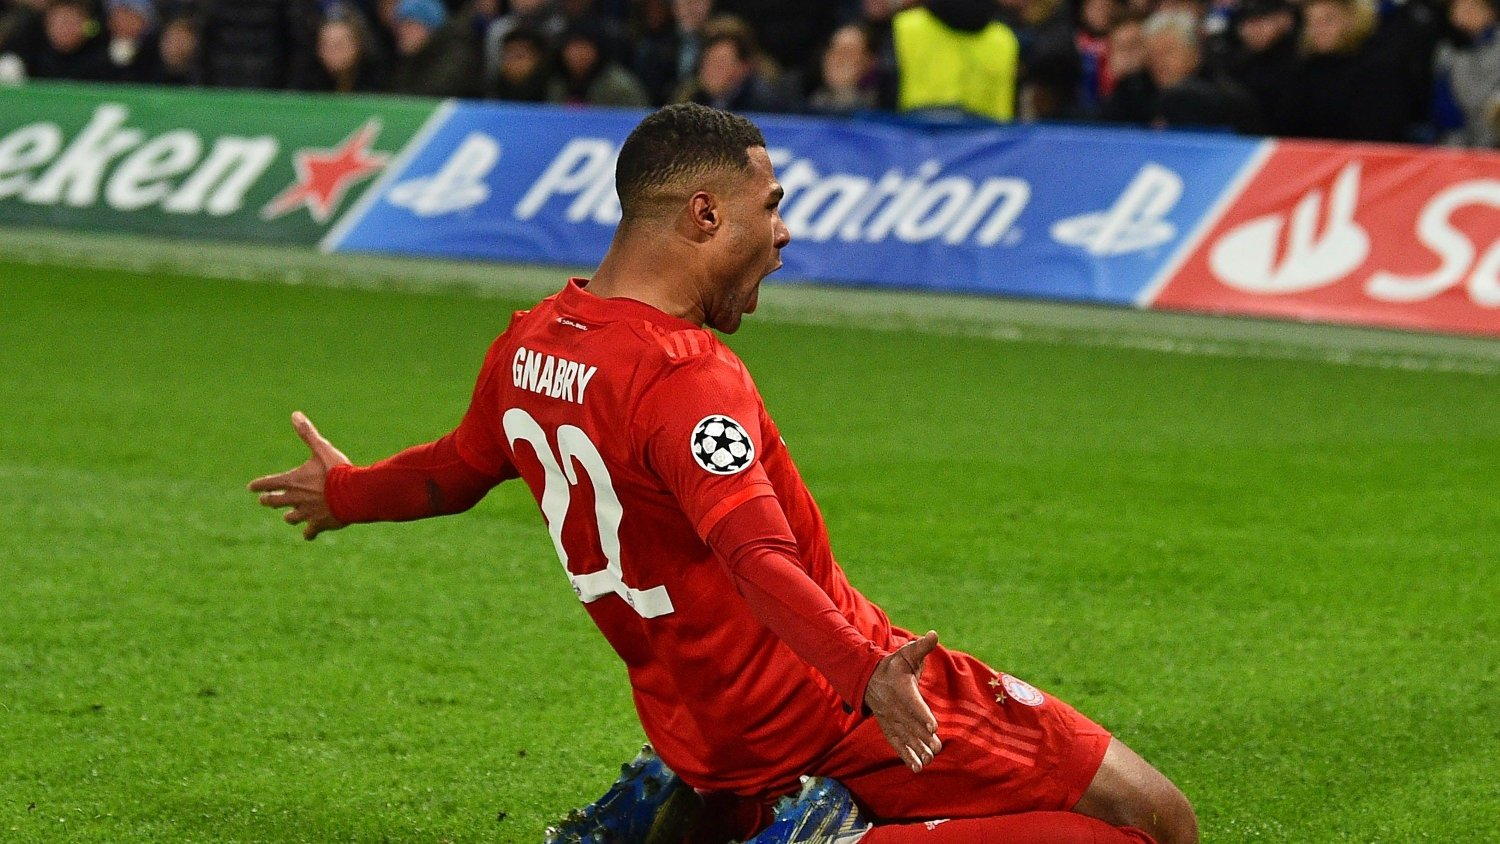 Bayern Munich's German striker Serge Gnabry celebrates after scoring their second goal during the UEFA Champion's League round of 16 first leg football match between Chelsea and Bayern Munich at Stamford Bridge in London on February 25, 2020.